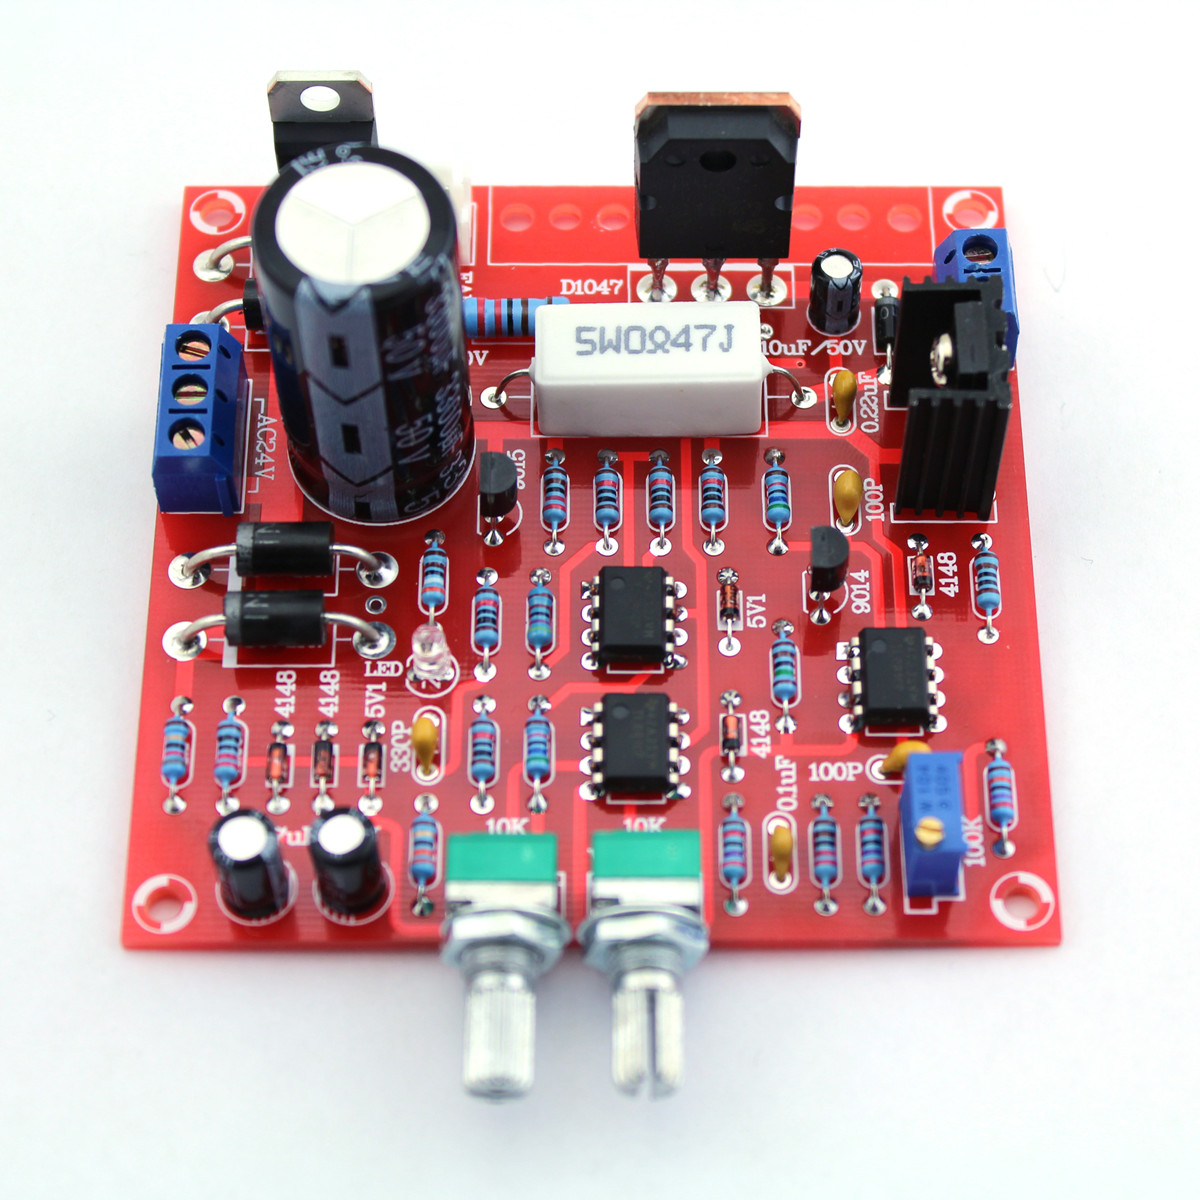 Original Hiland 0 30v 2ma 3a Adjustable Dc Regulated Power Supply 24v Dual Circuit Diagram Module Diy Kit